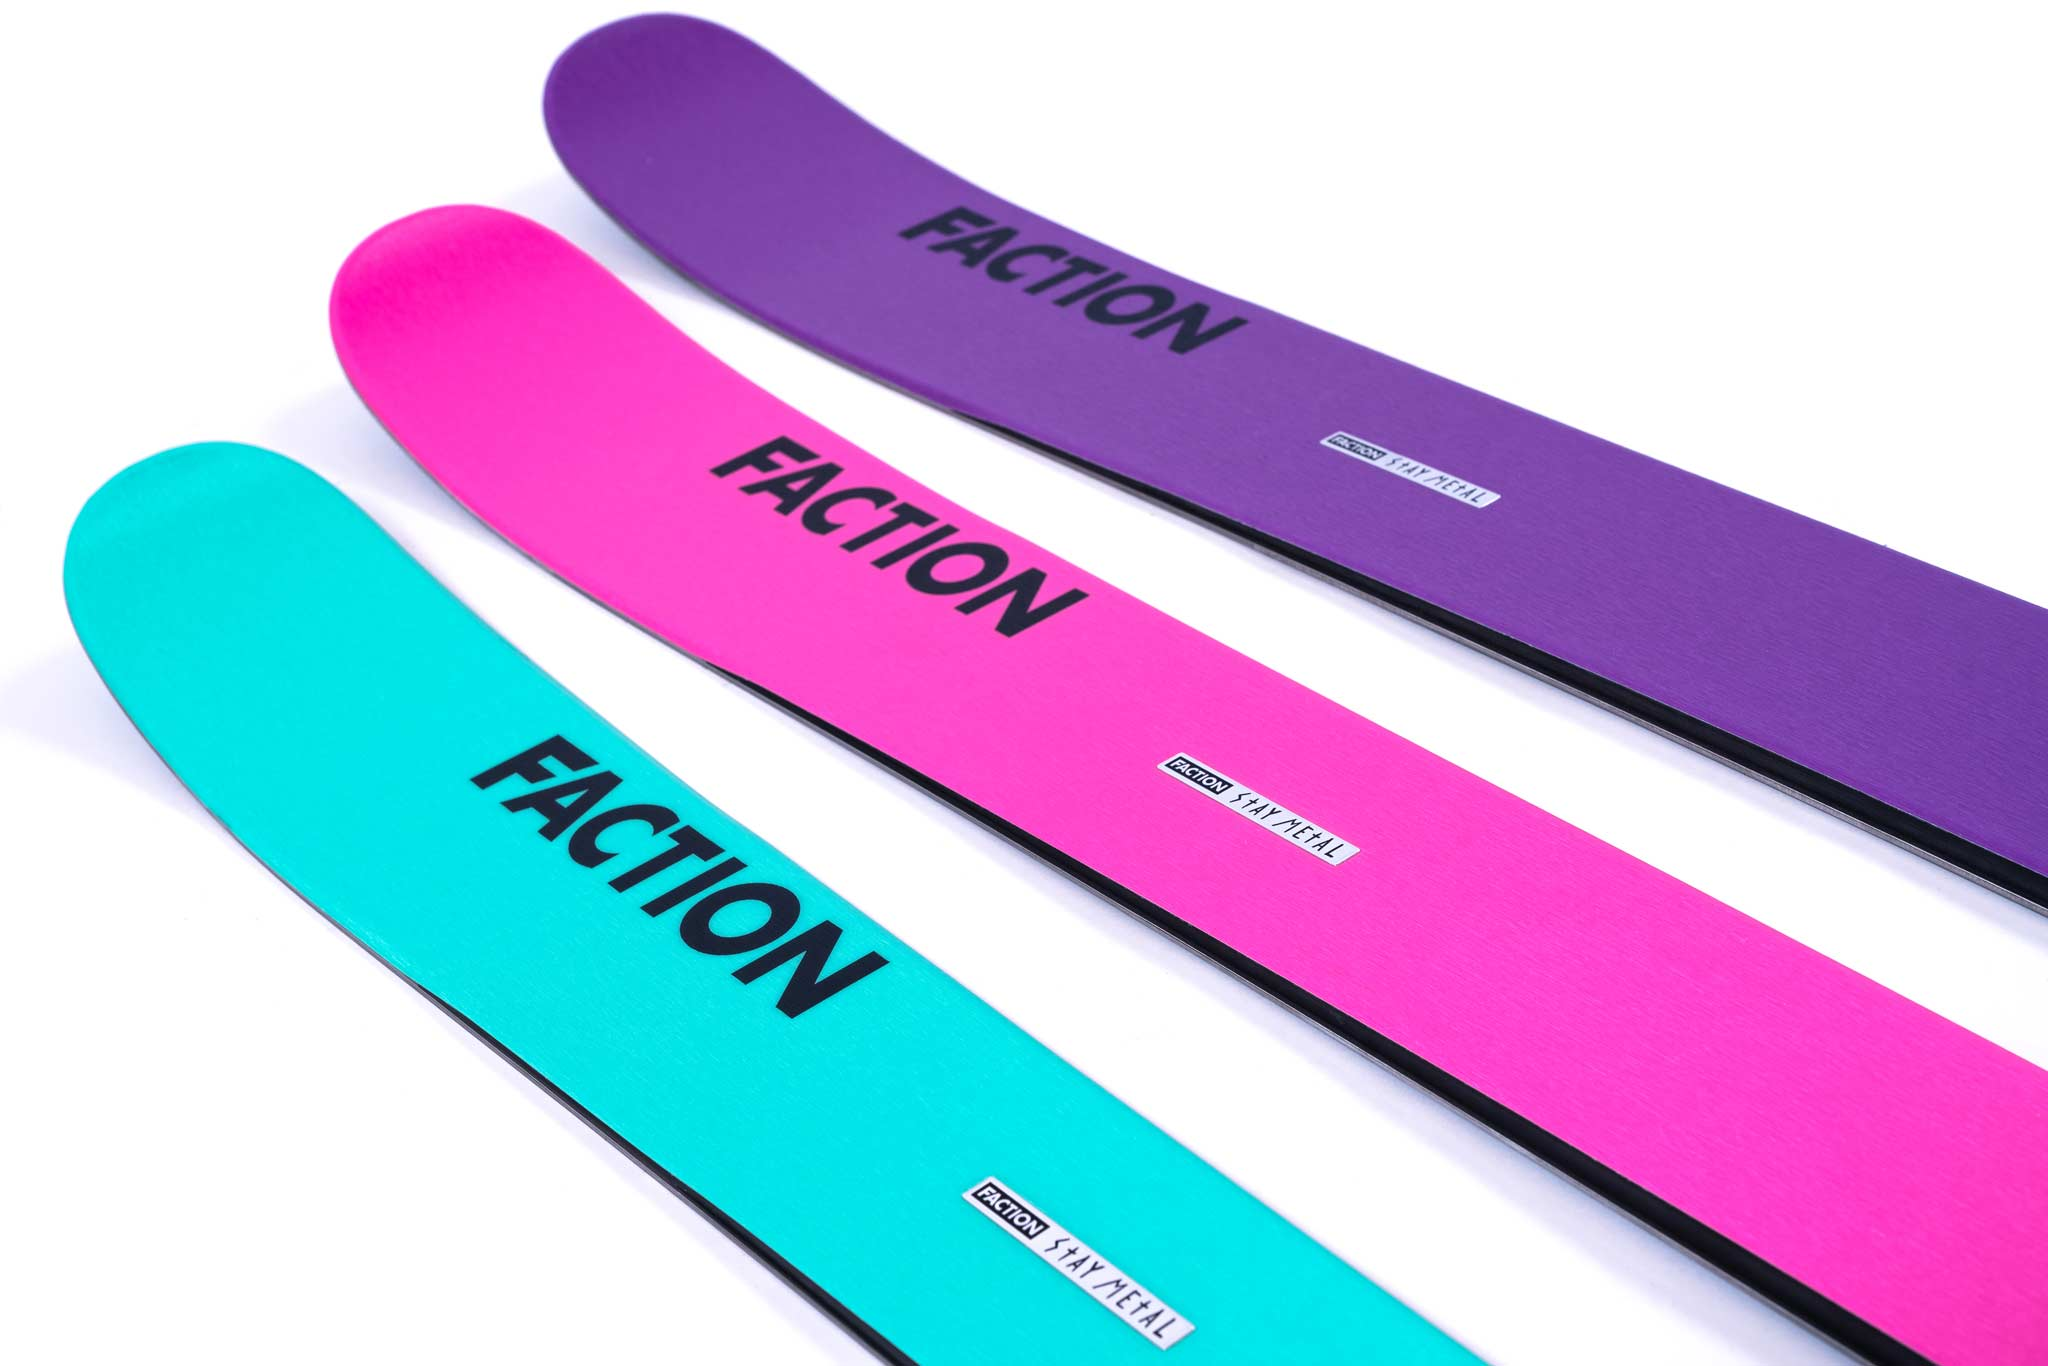 Faction Skis Dictator X Series 2022